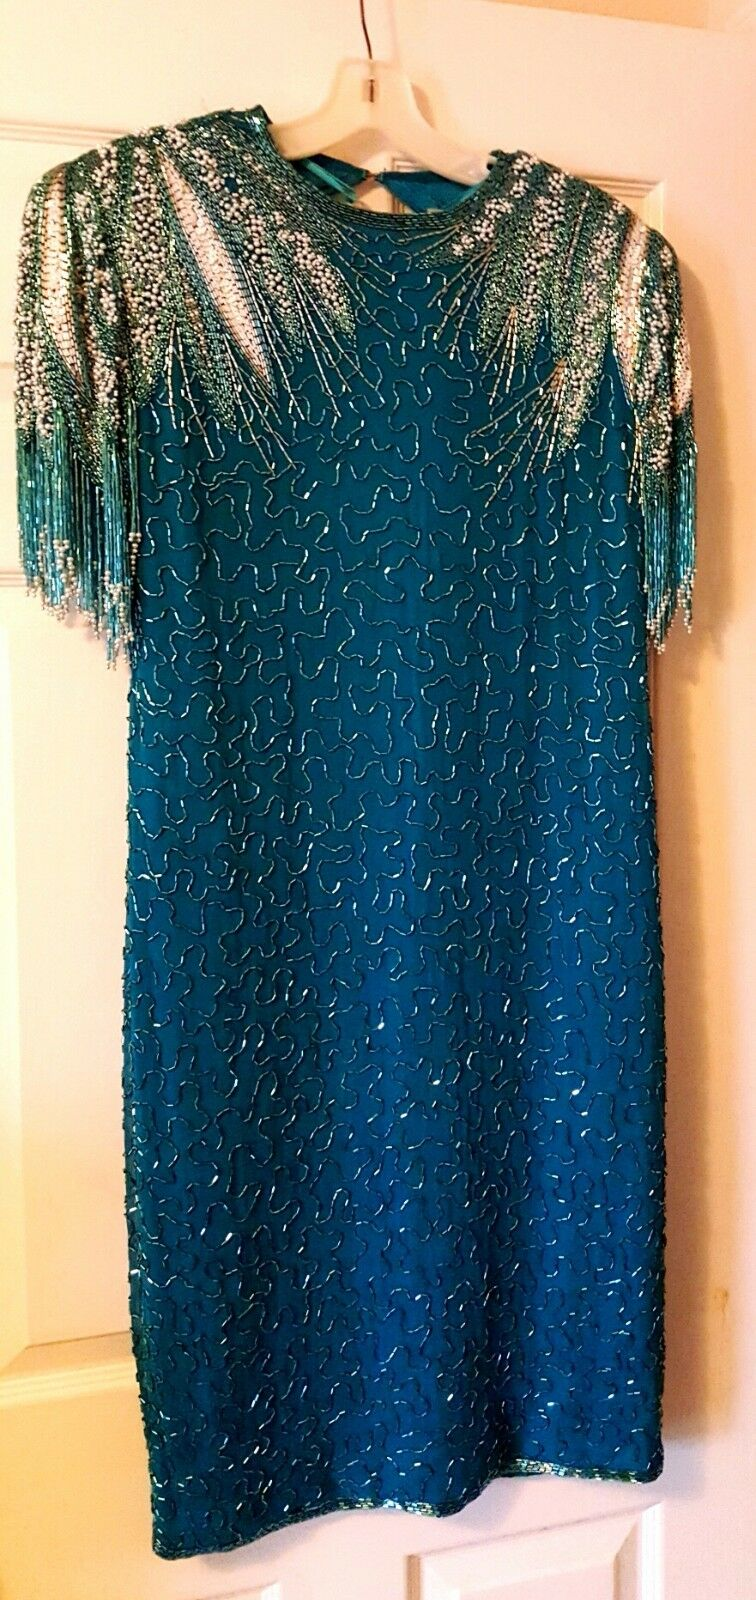 A.J.BARI OR ROYAL THE 1 EAST COLLECT SILK LUXURY BEADED SEQUINED EVENING DRESS